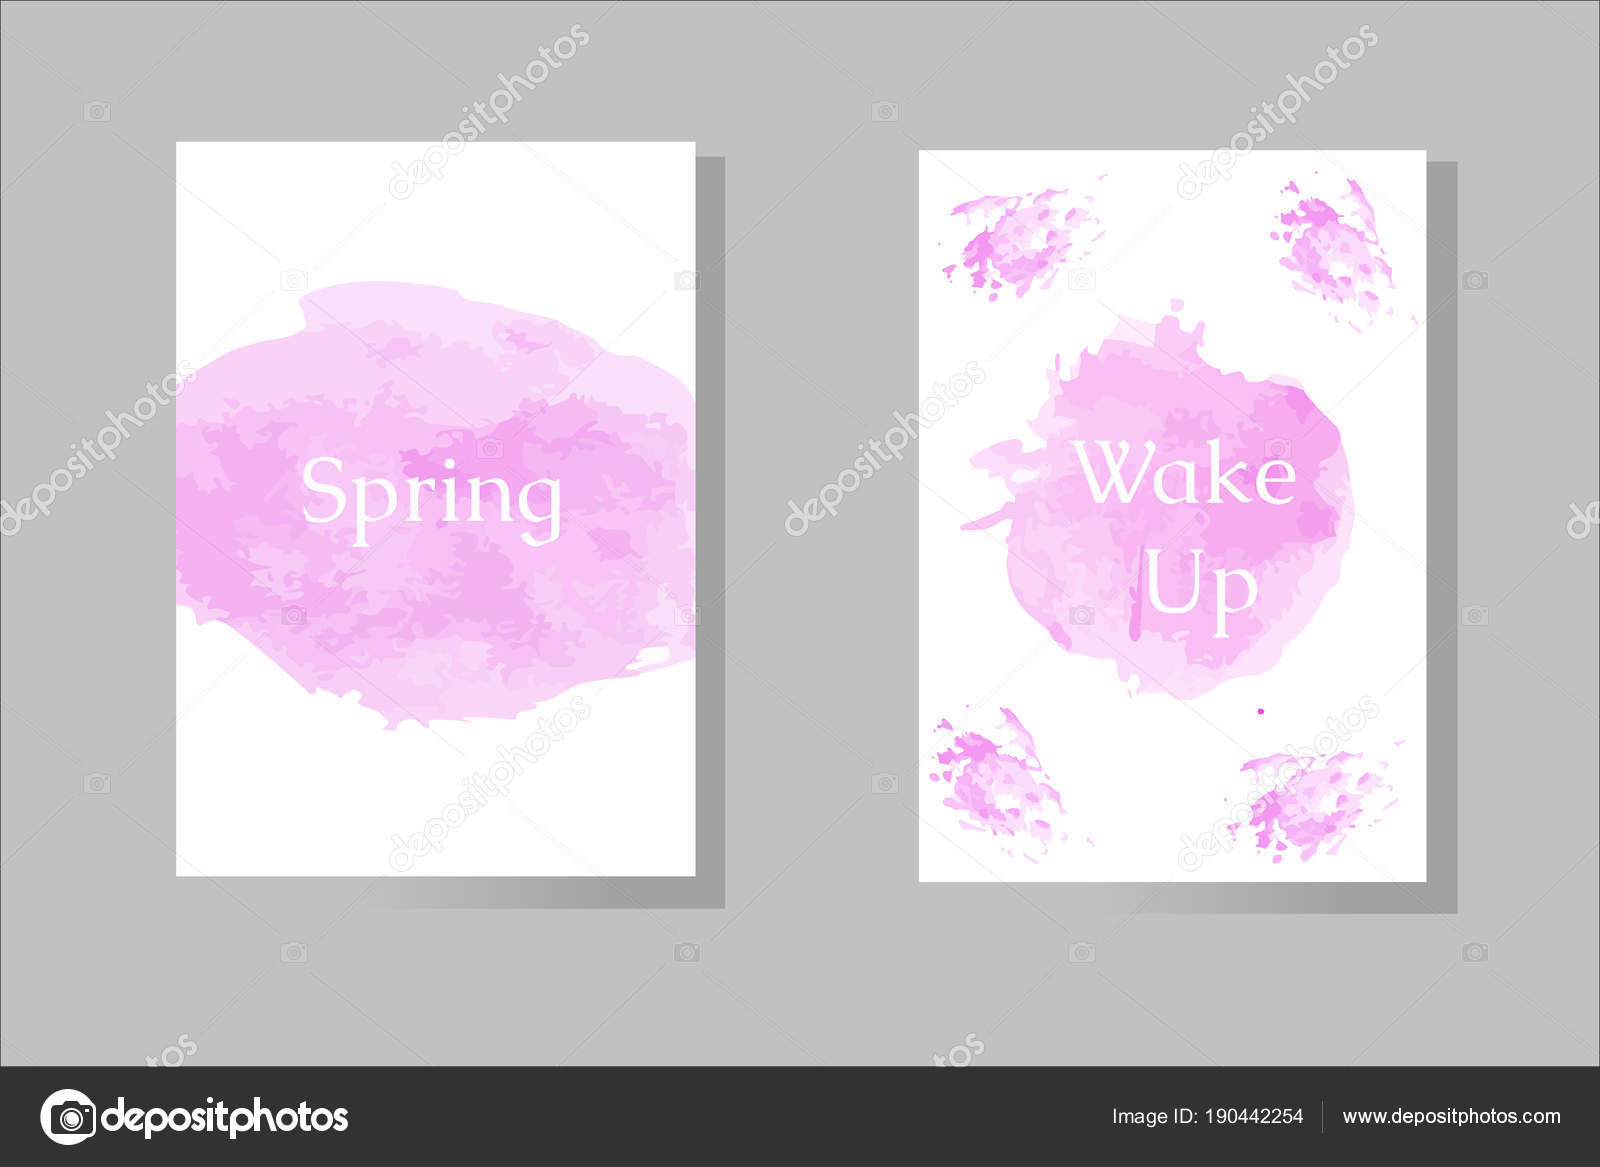 Watercolor Vector Template For Your Design Brush Splash Purple Style With A Spring And Wake Up Word On It By Samuel Miles